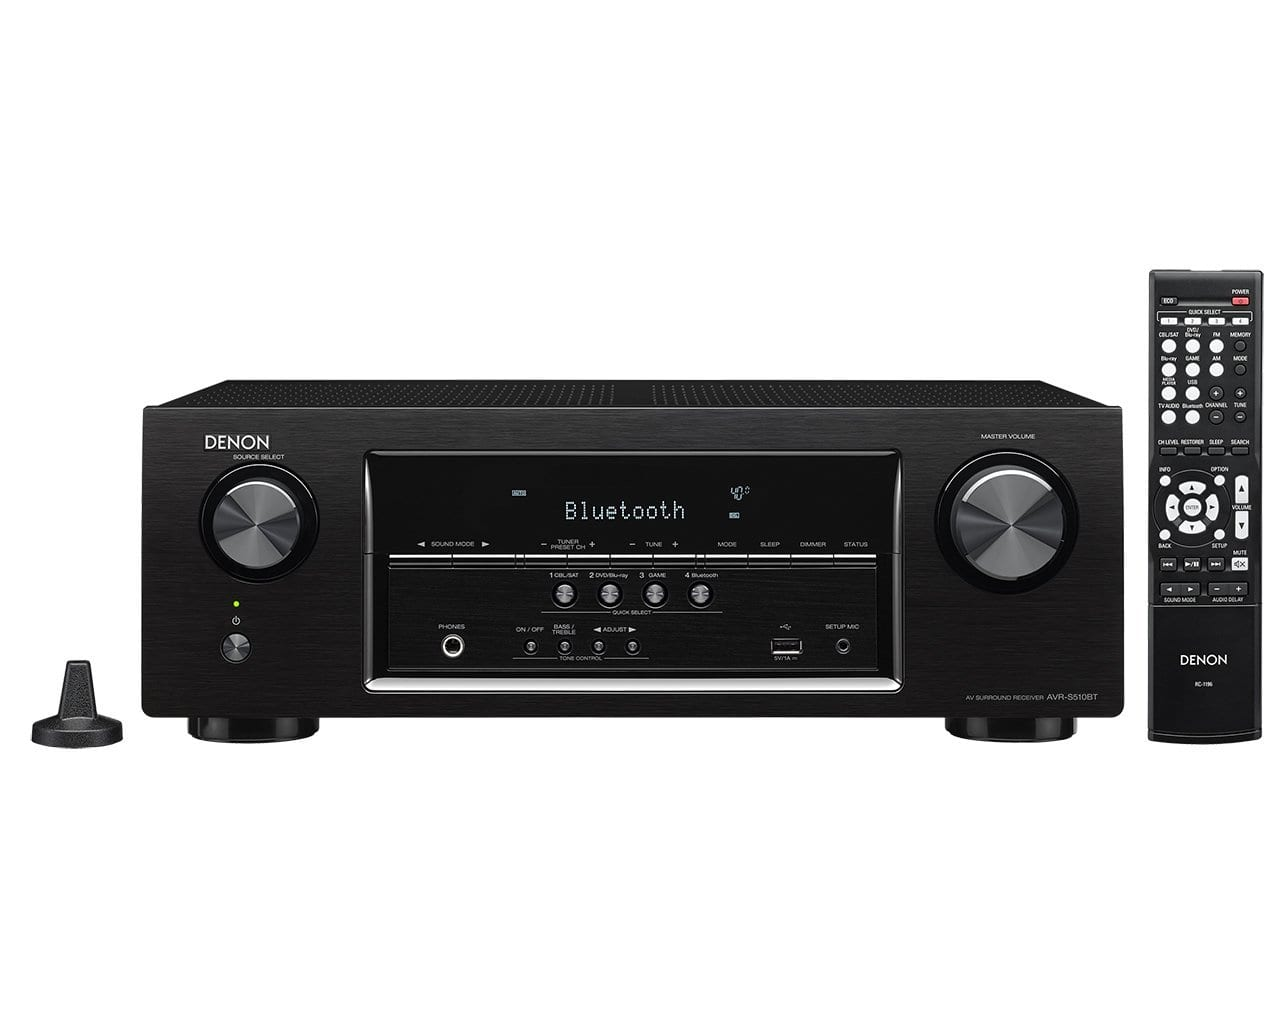 Frys Email Exclusive: Denon AVR-S510BT 5.2 Channel AV Receiver  $188 + Free Store Pickup